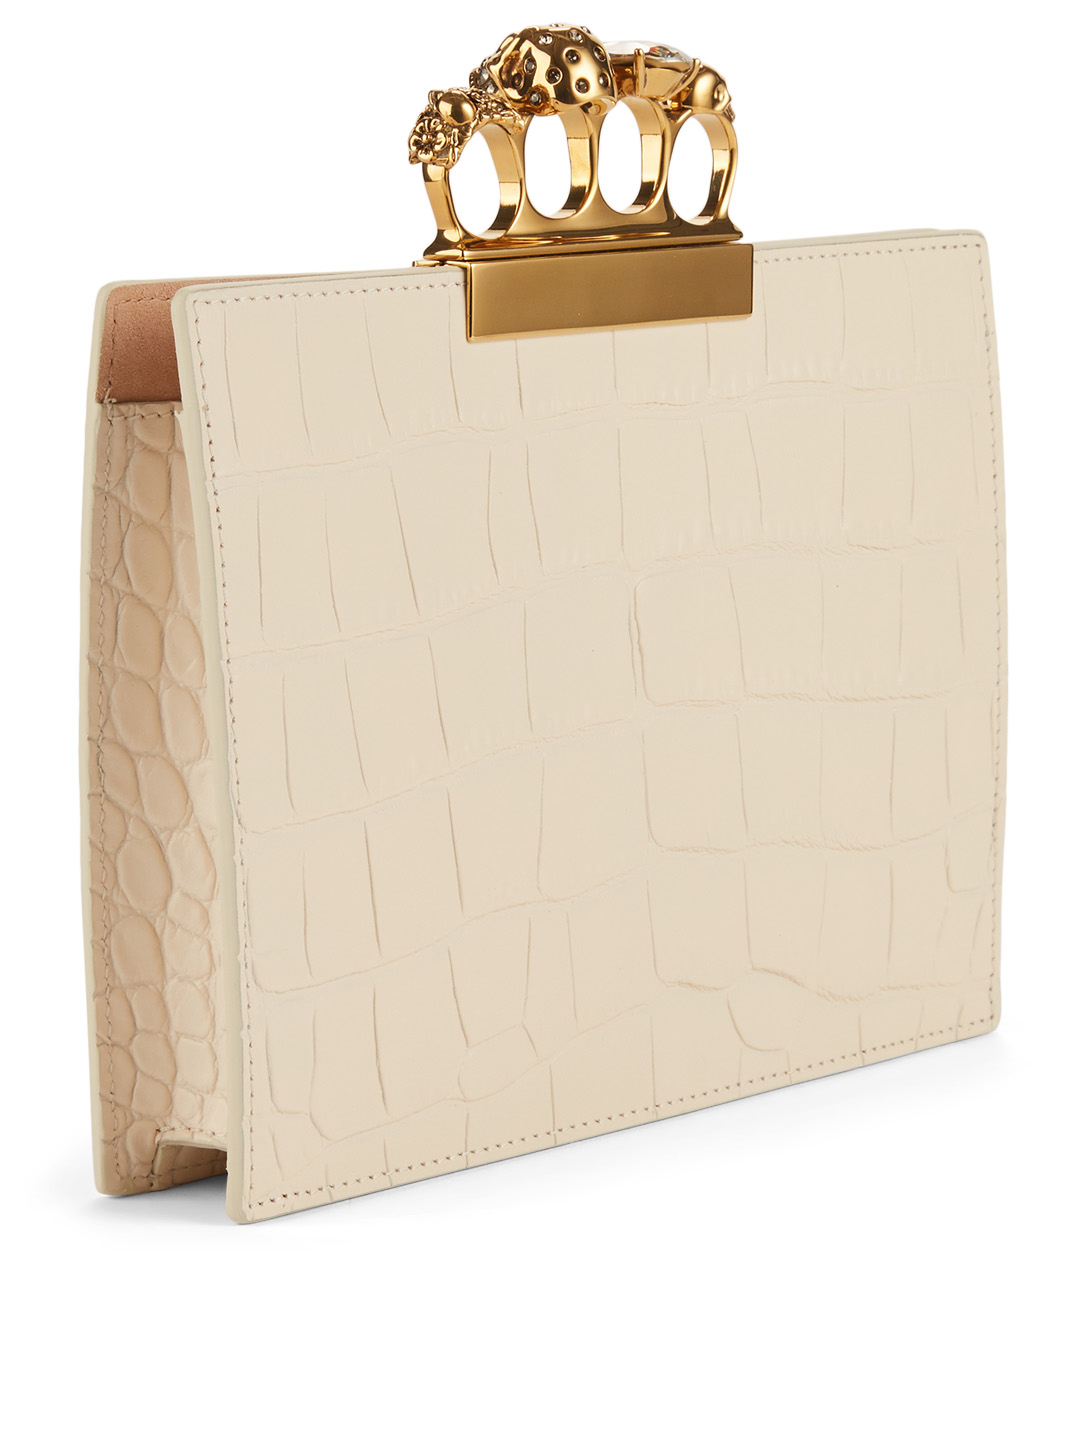 ALEXANDER MCQUEEN Croc-Embossed Leather Four-Ring Clutch Bag With Crystals Women's White